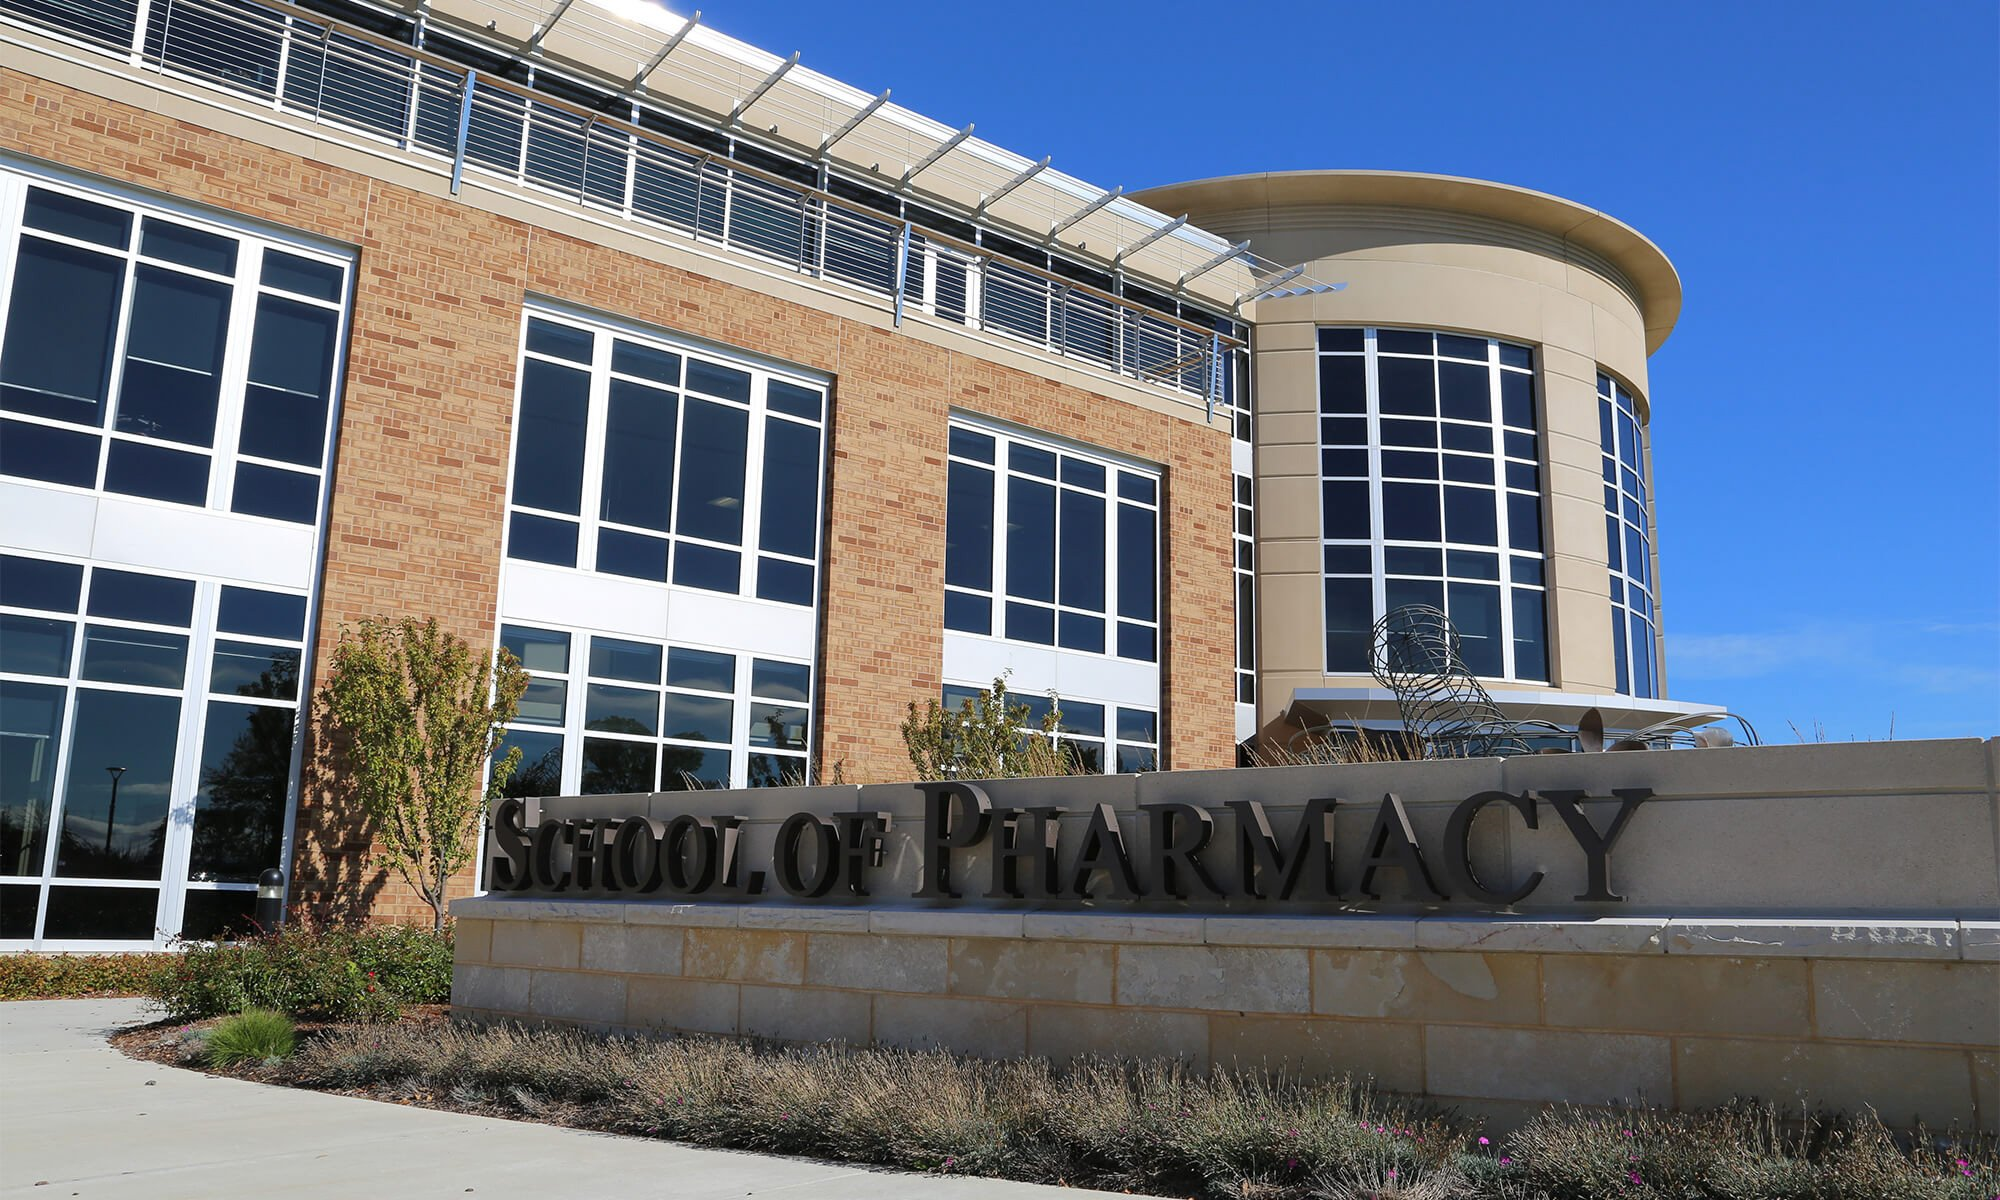 Cocnordia's School of Pharmacy is among the best in terms of residency matching success.